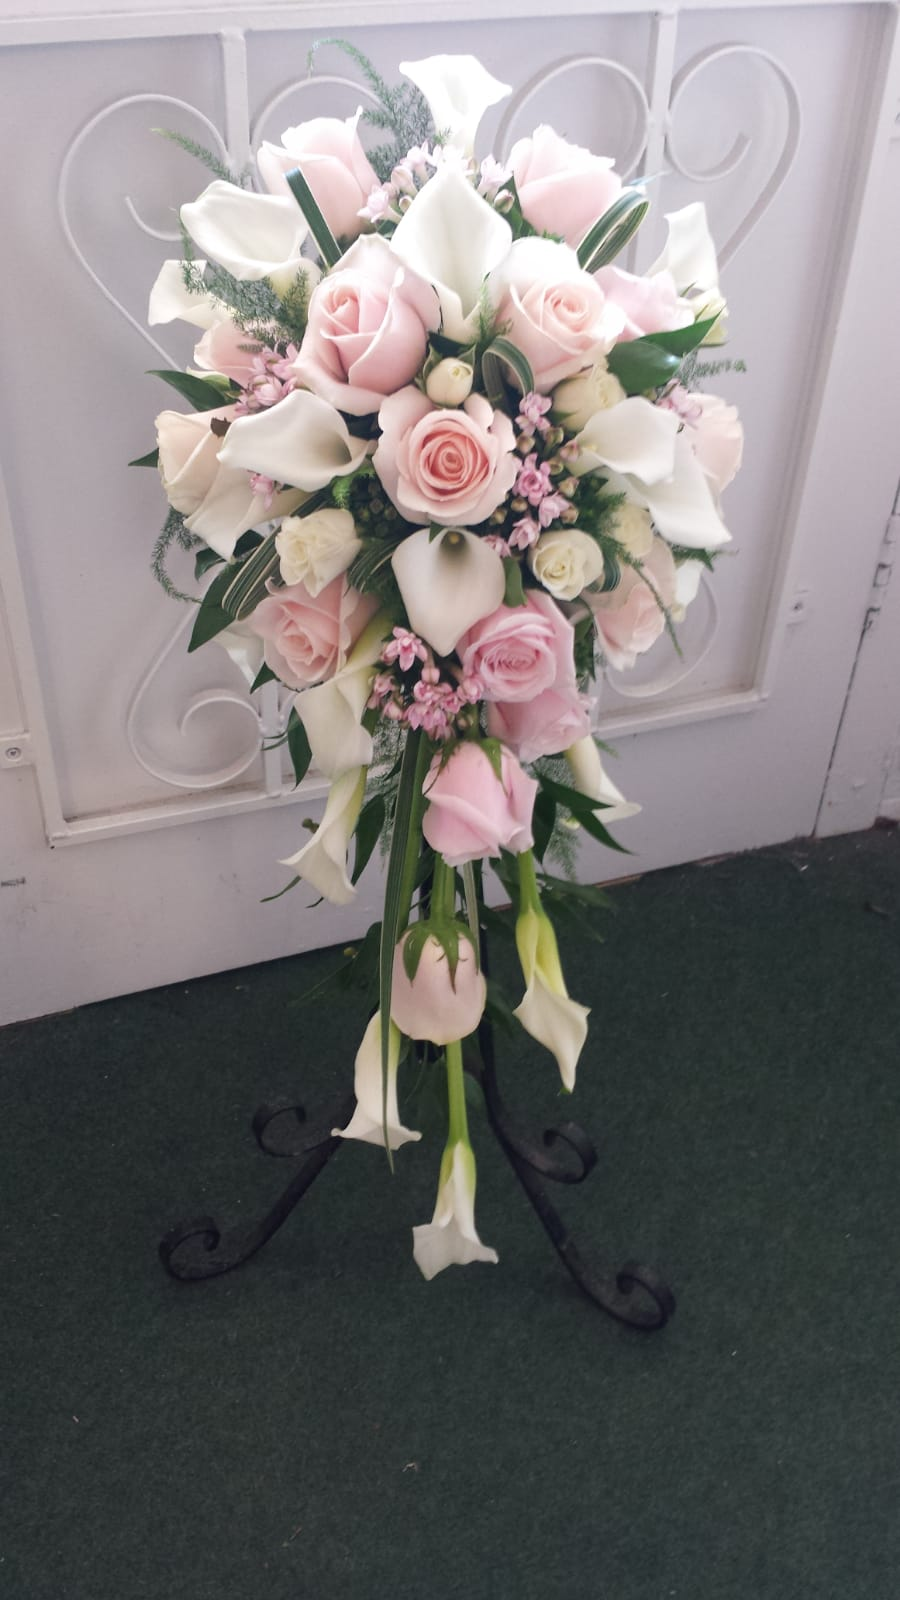 Timeless and elegant bridal handshower bouquet wedding flowers by Rugeley Florist - Rugeley Floral Studio Fine Flowers